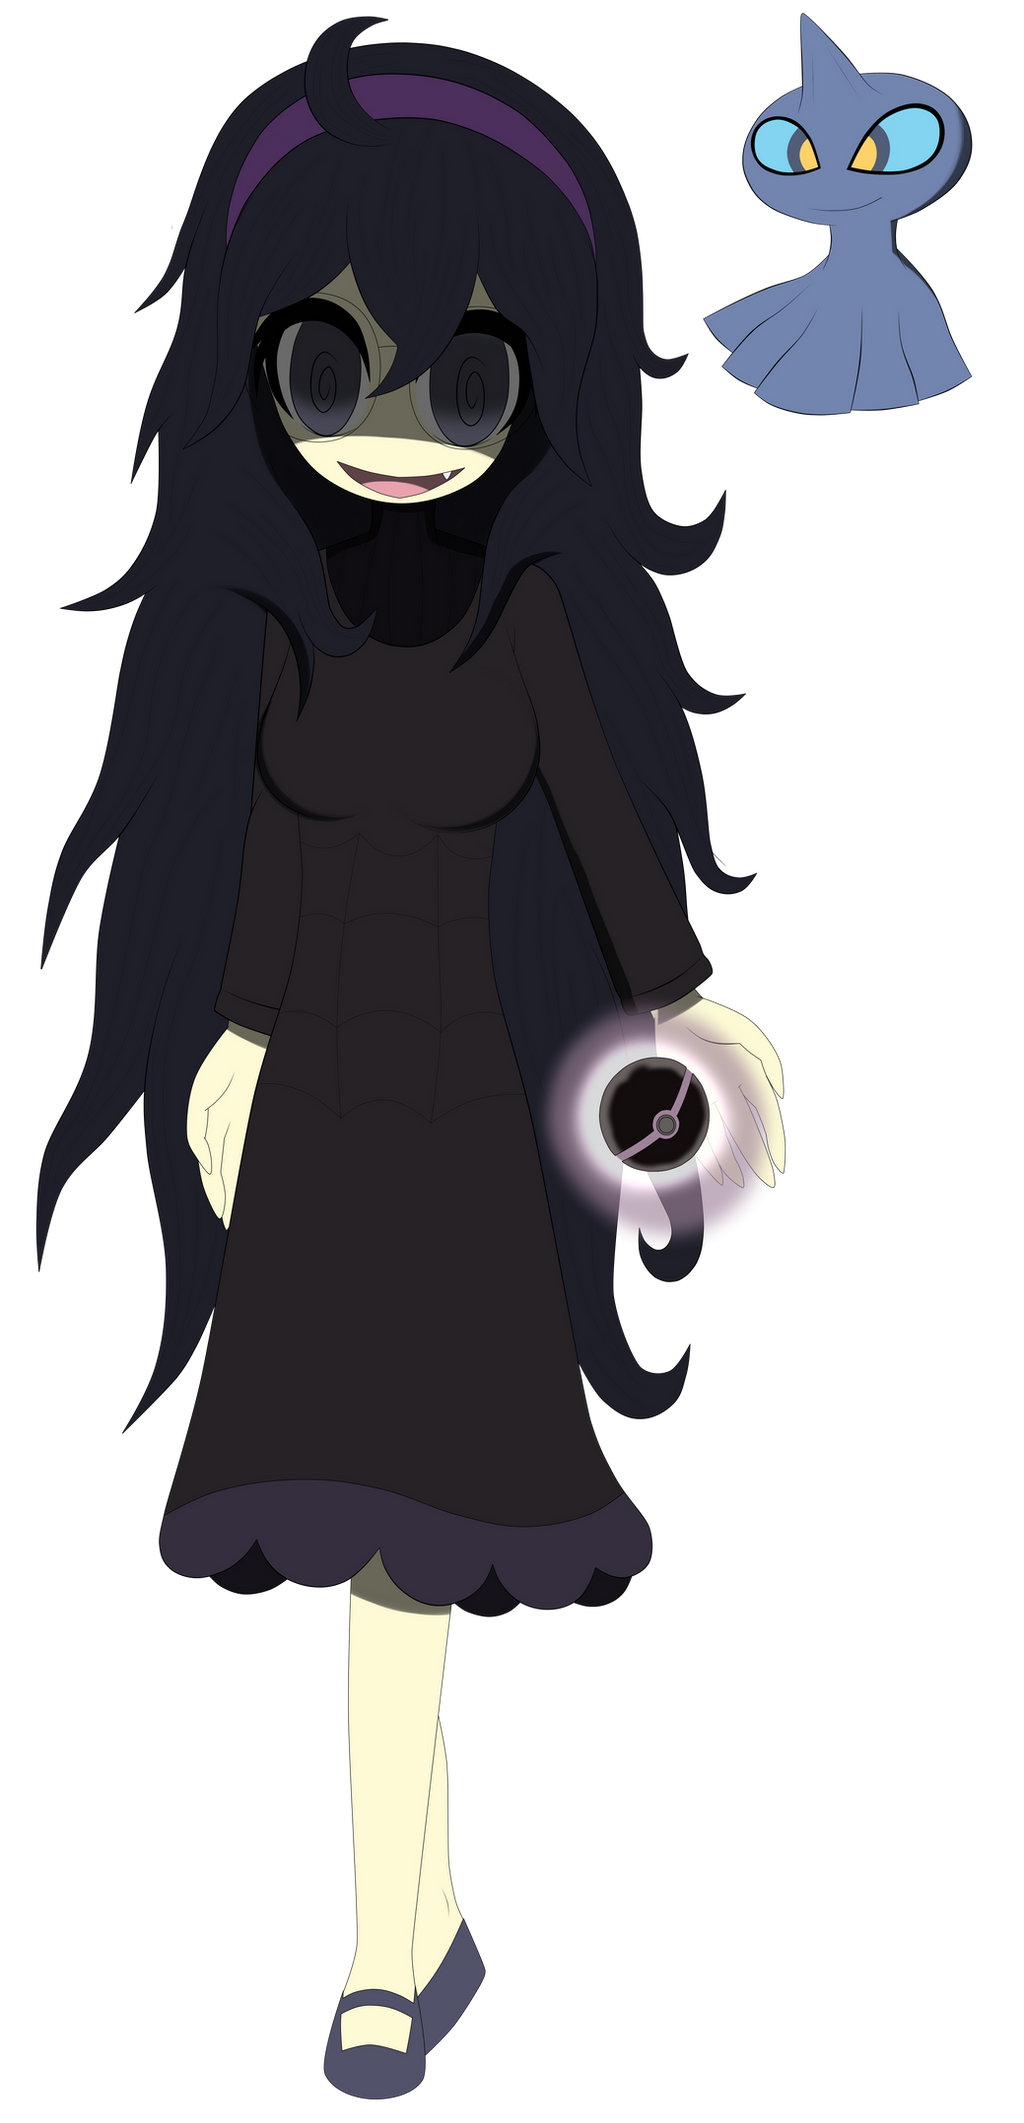 Halloween Event Hex Maniac Kou By Tofukou On Deviantart